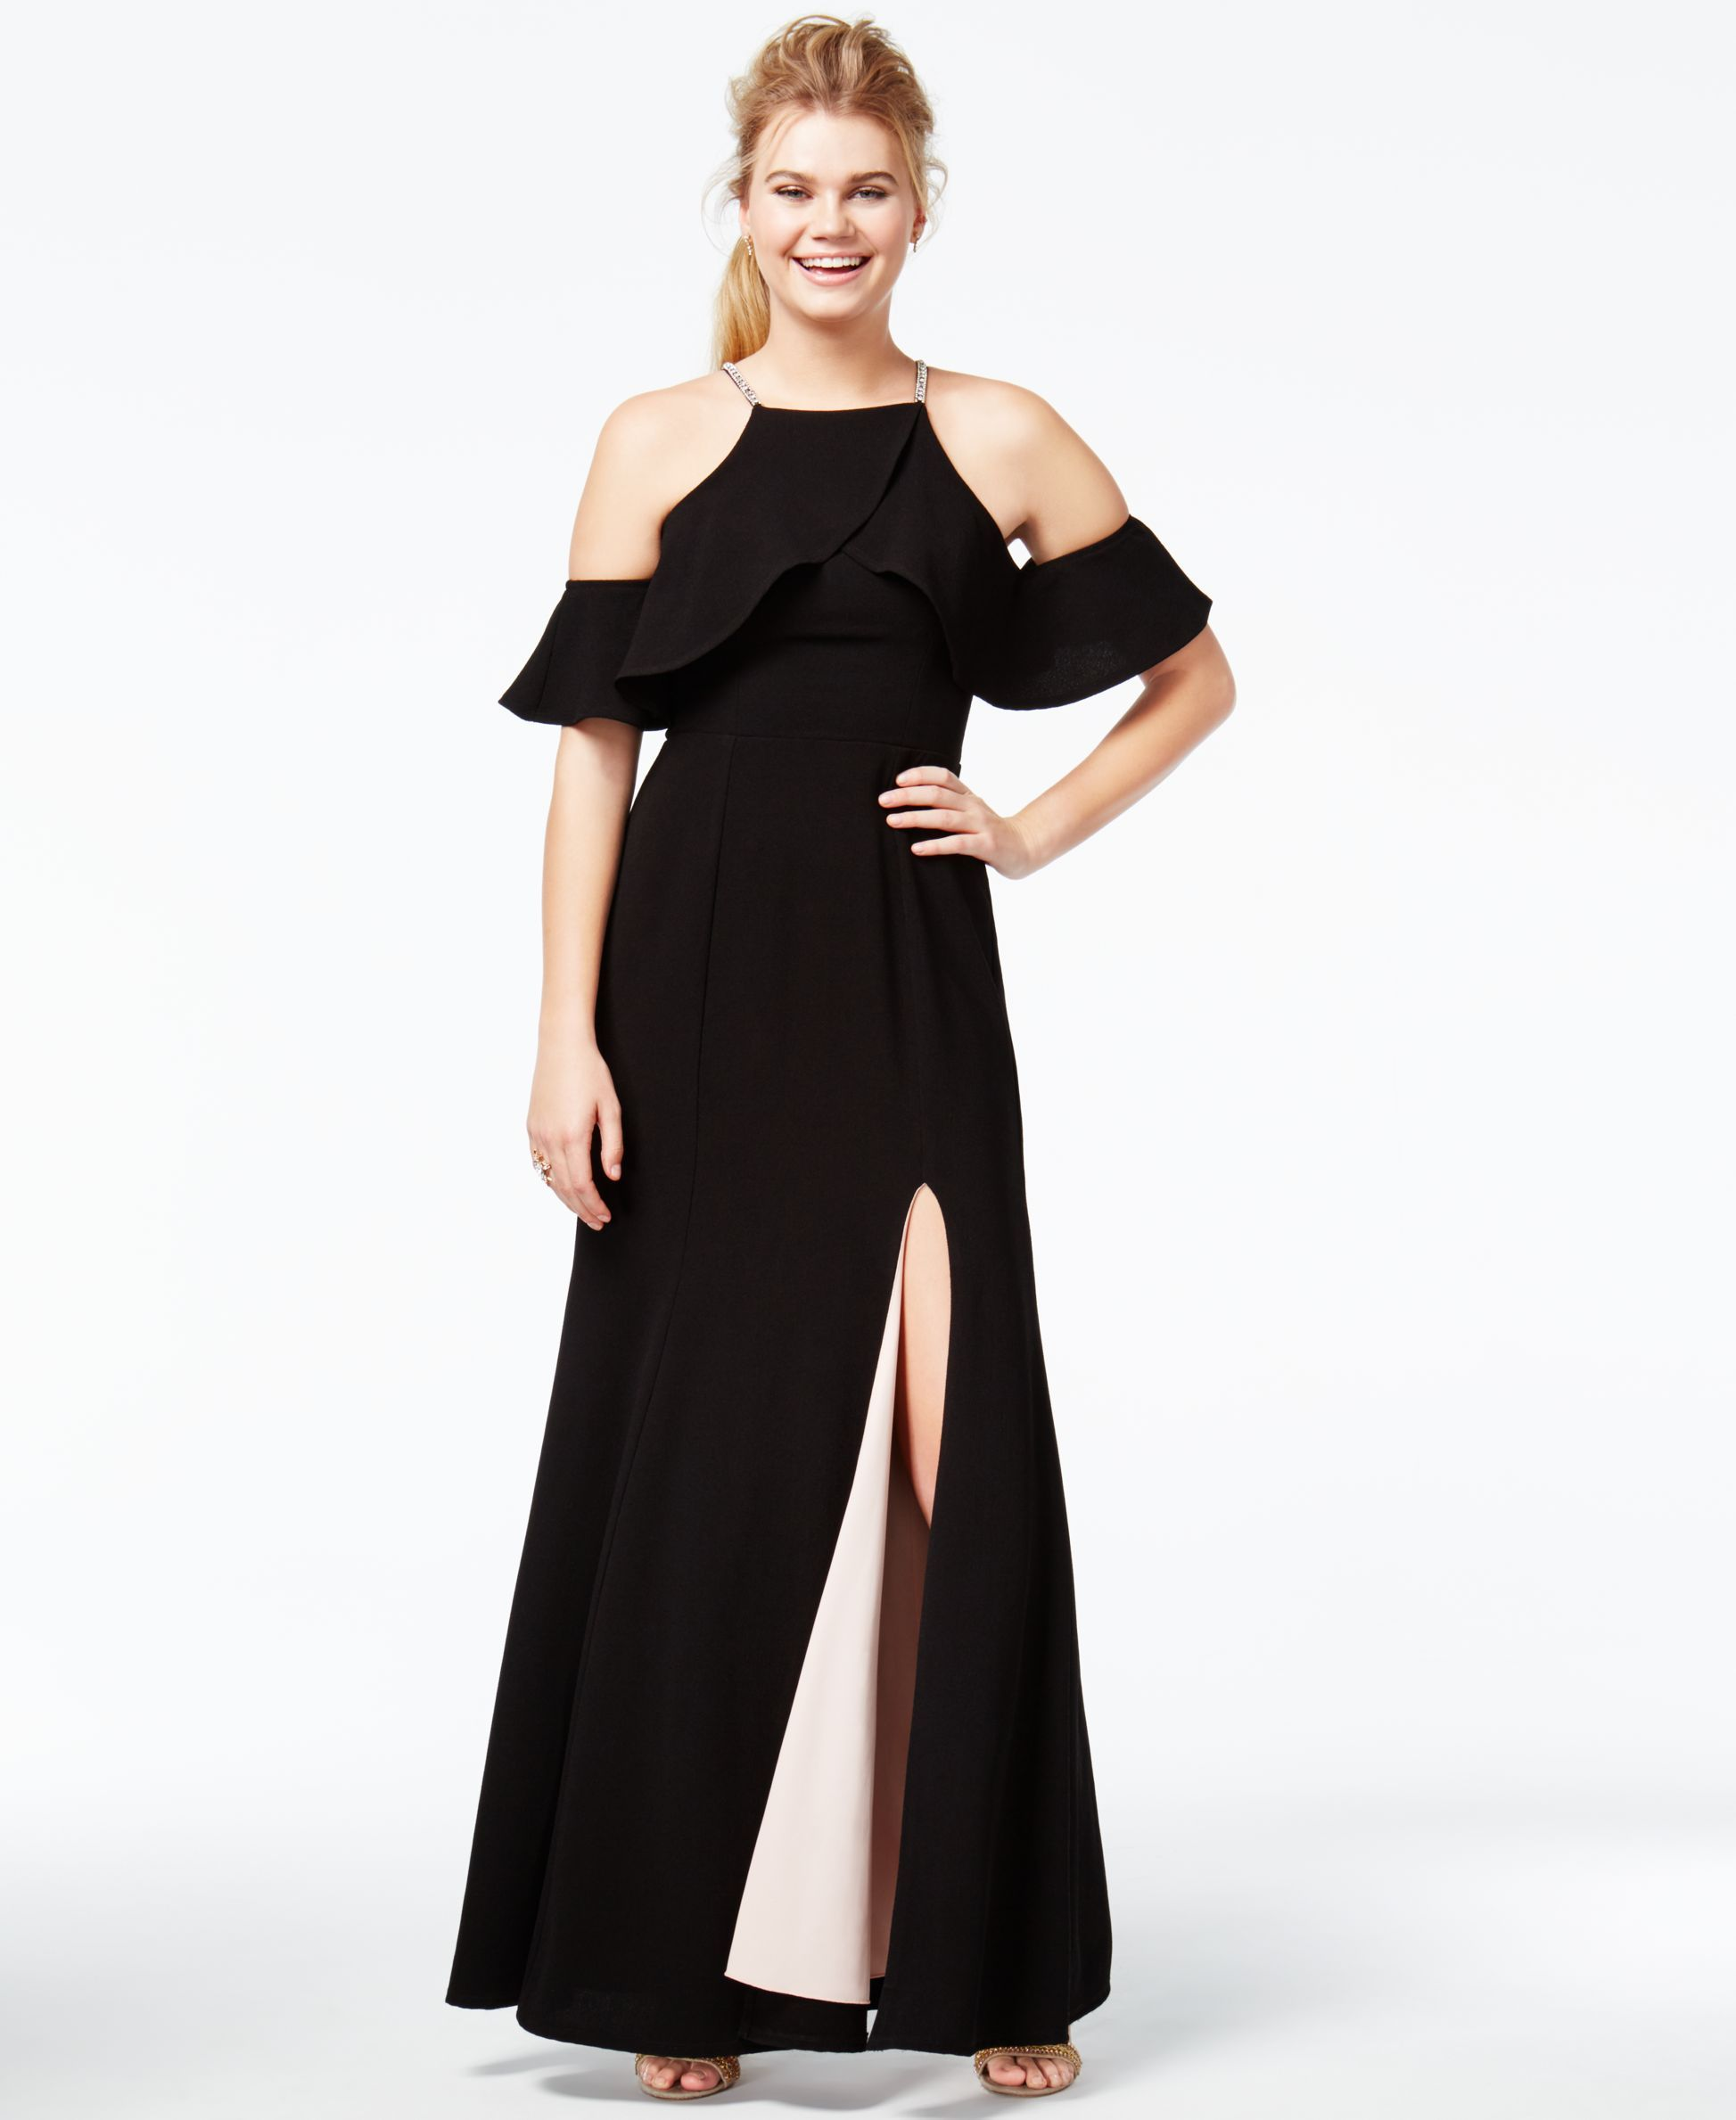 Speechless juniorsu ruffled coldshoulder gown products